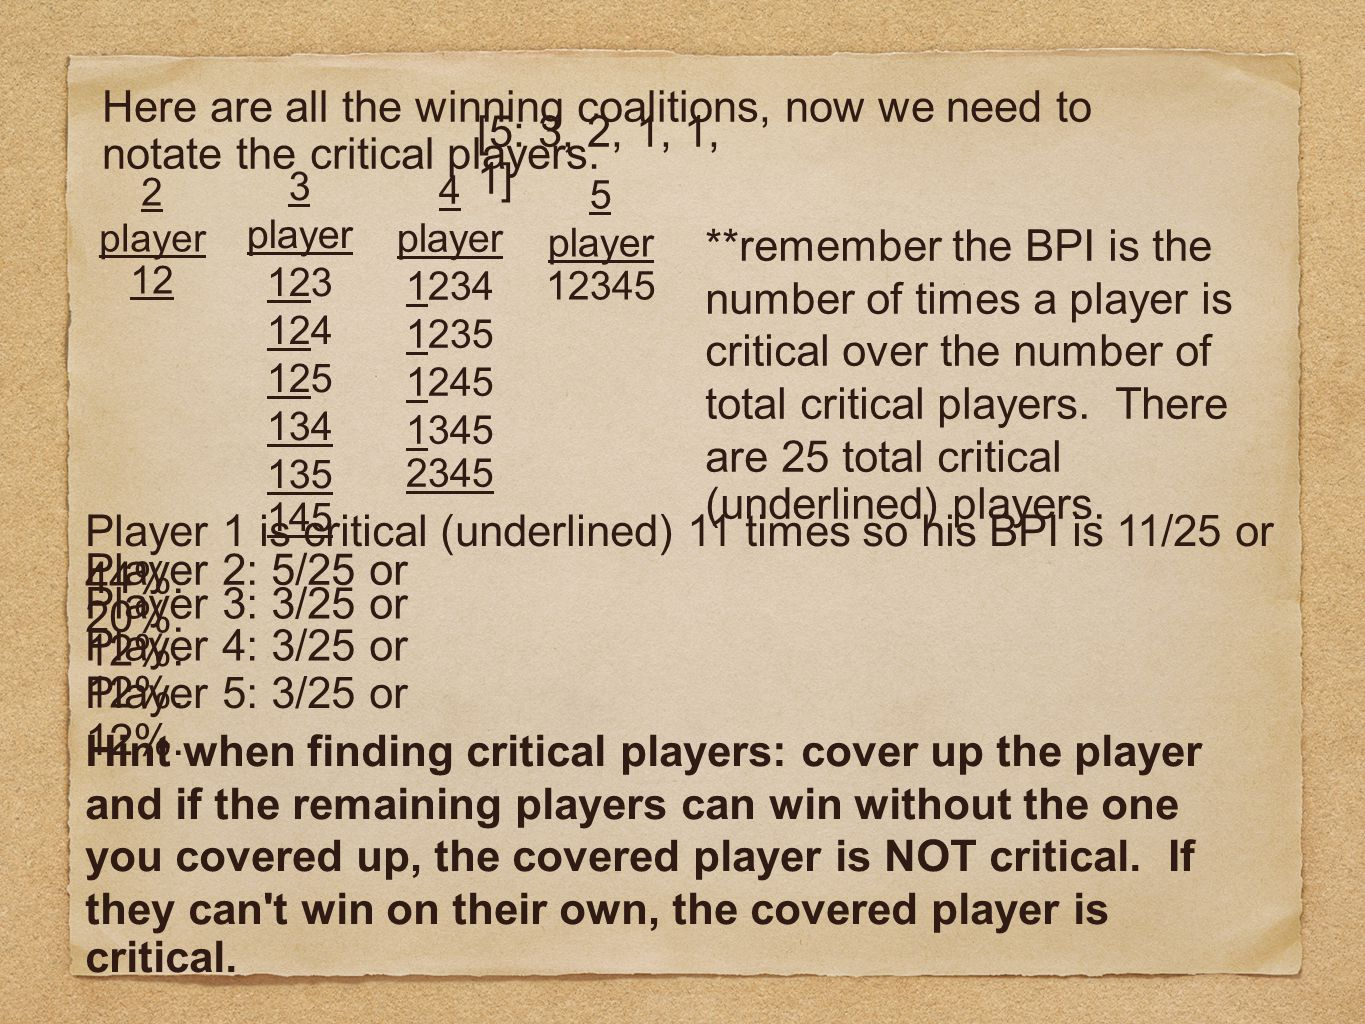 Player 1 is critical (underlined) 11 times so his BPI is 11/25 or 44%.